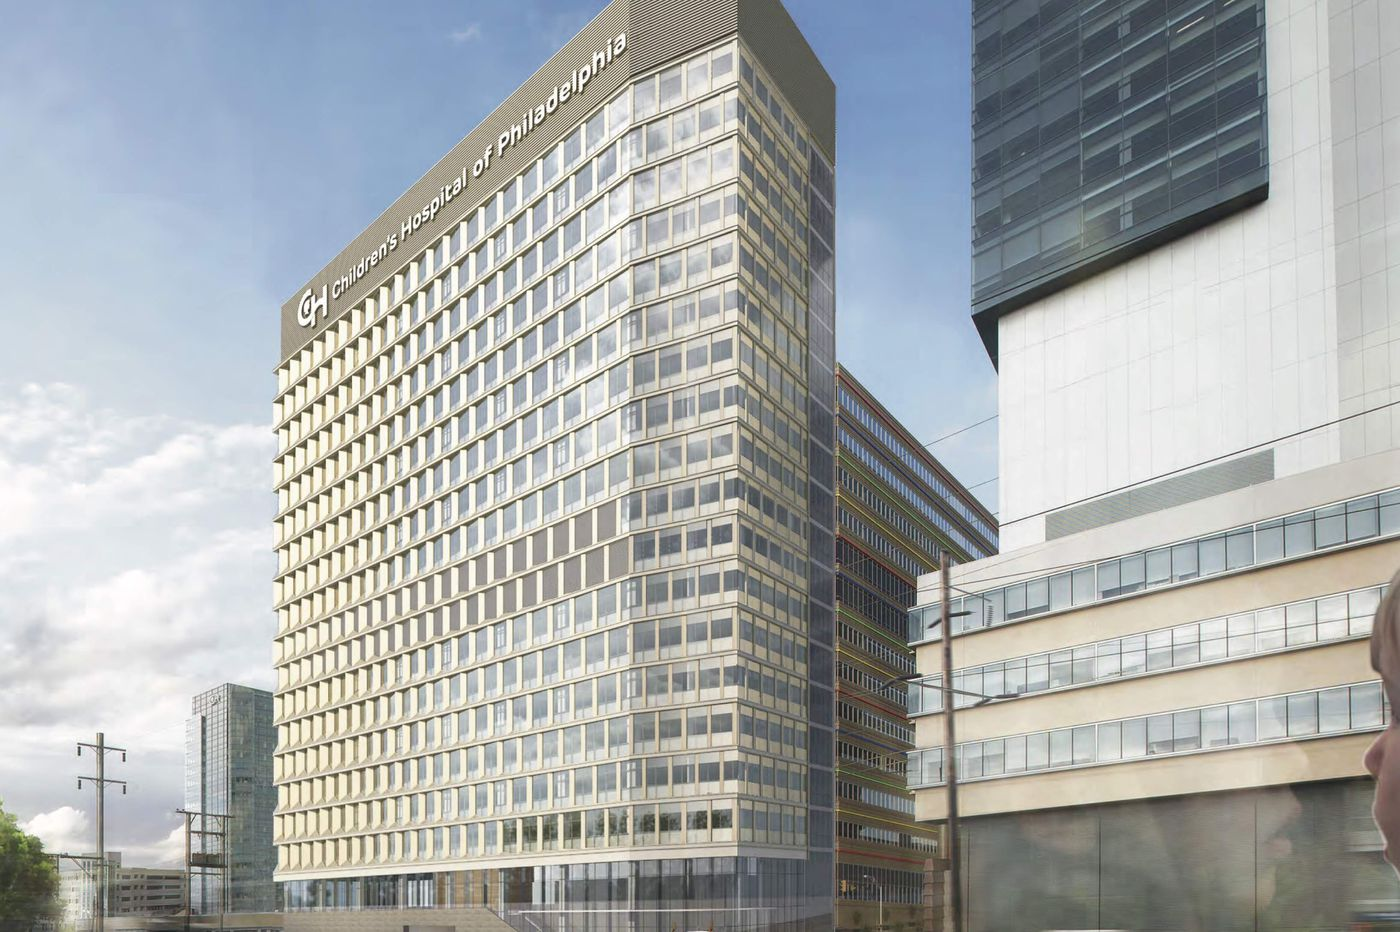 CHOP plans new medical office tower within its dense University City health campus